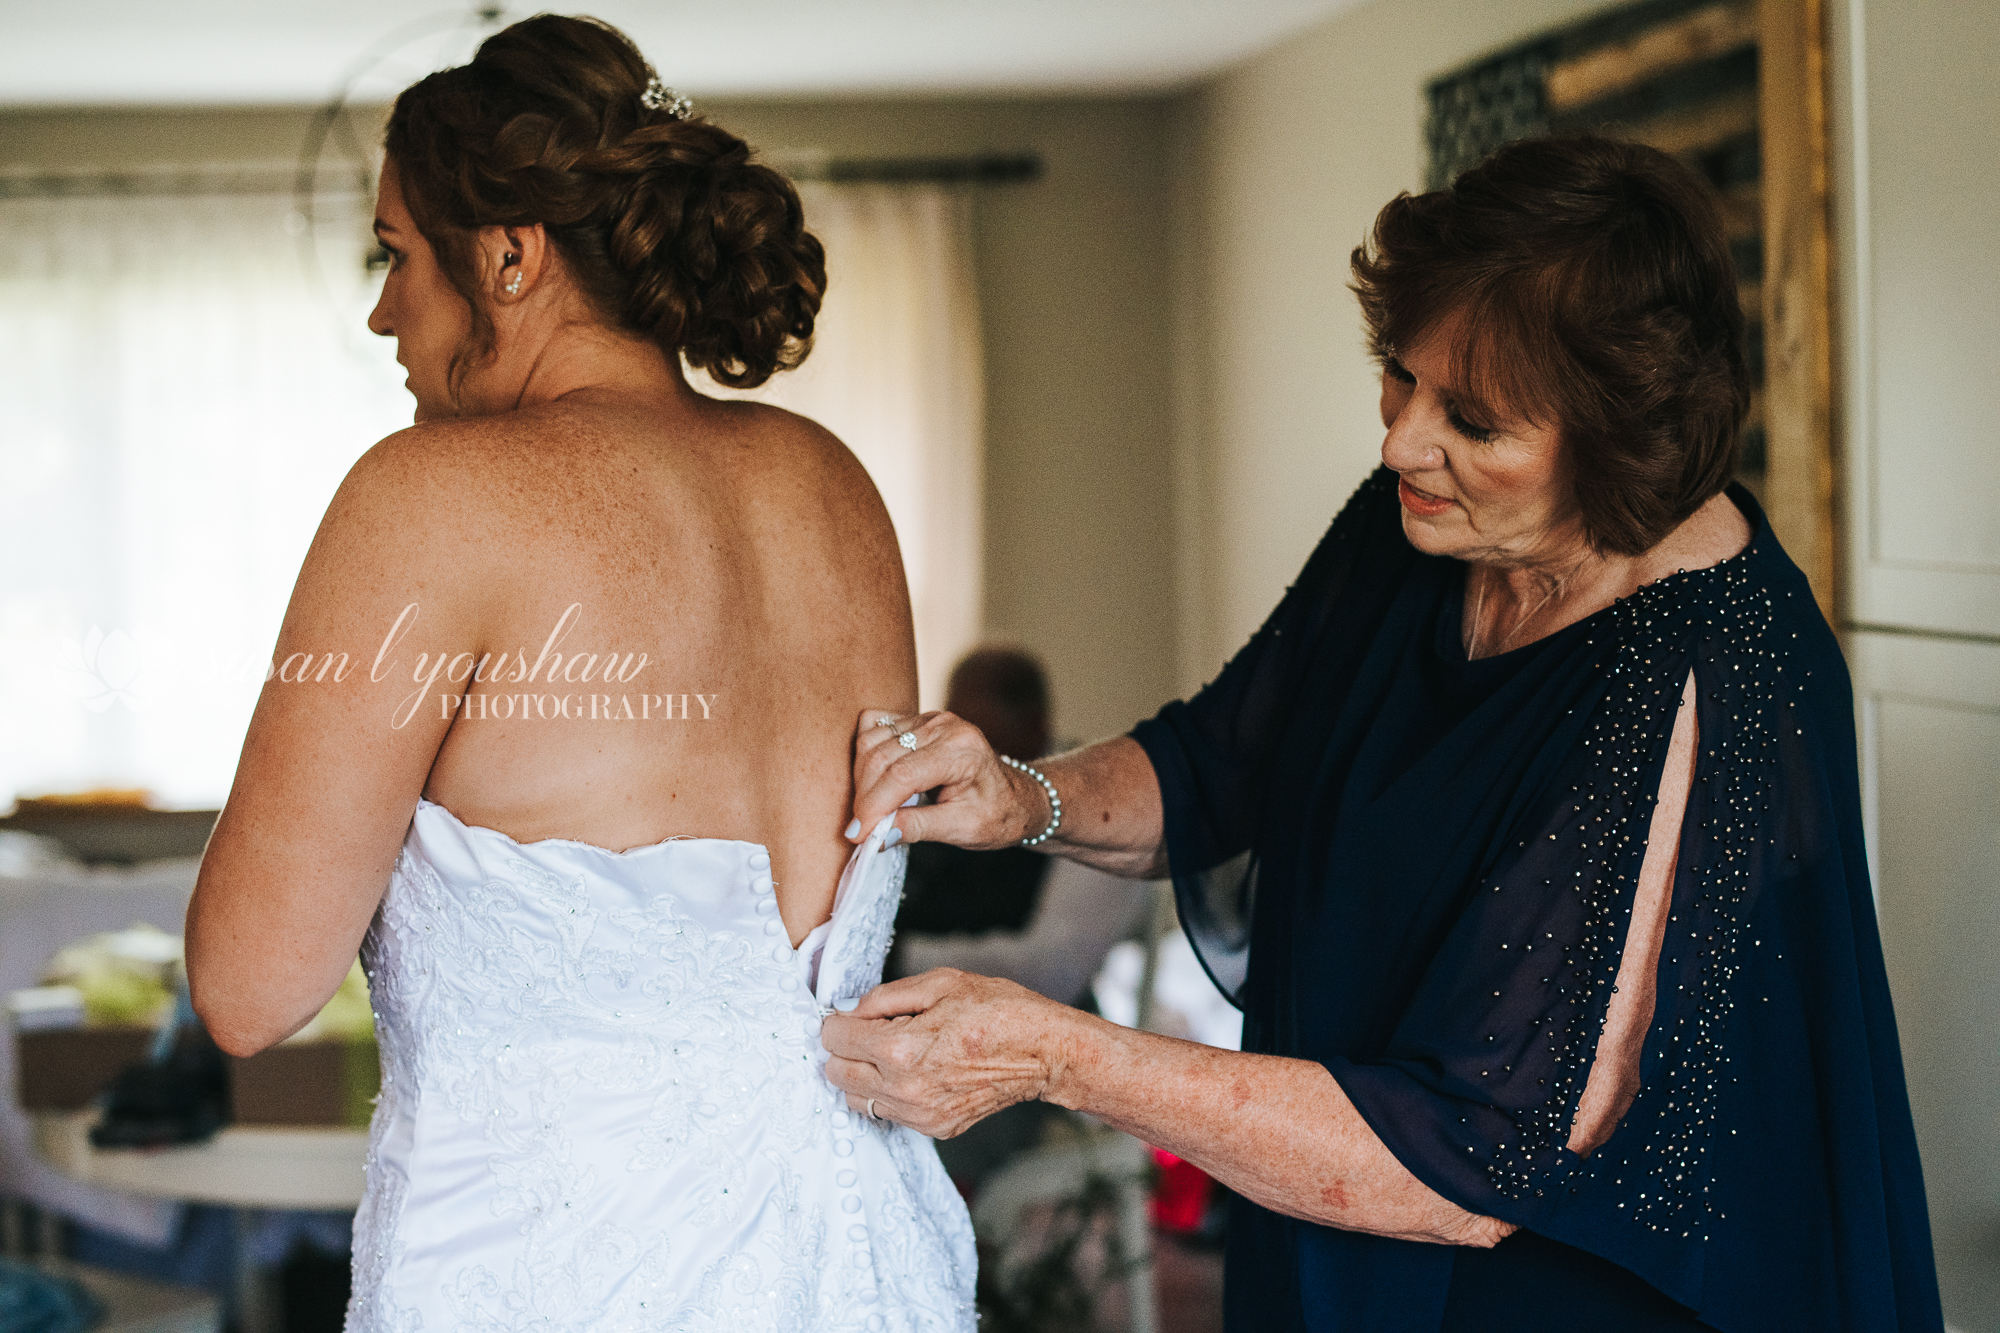 Erin and Jason Wedding Photos 07-06-2019 SLY Photography-22.jpg